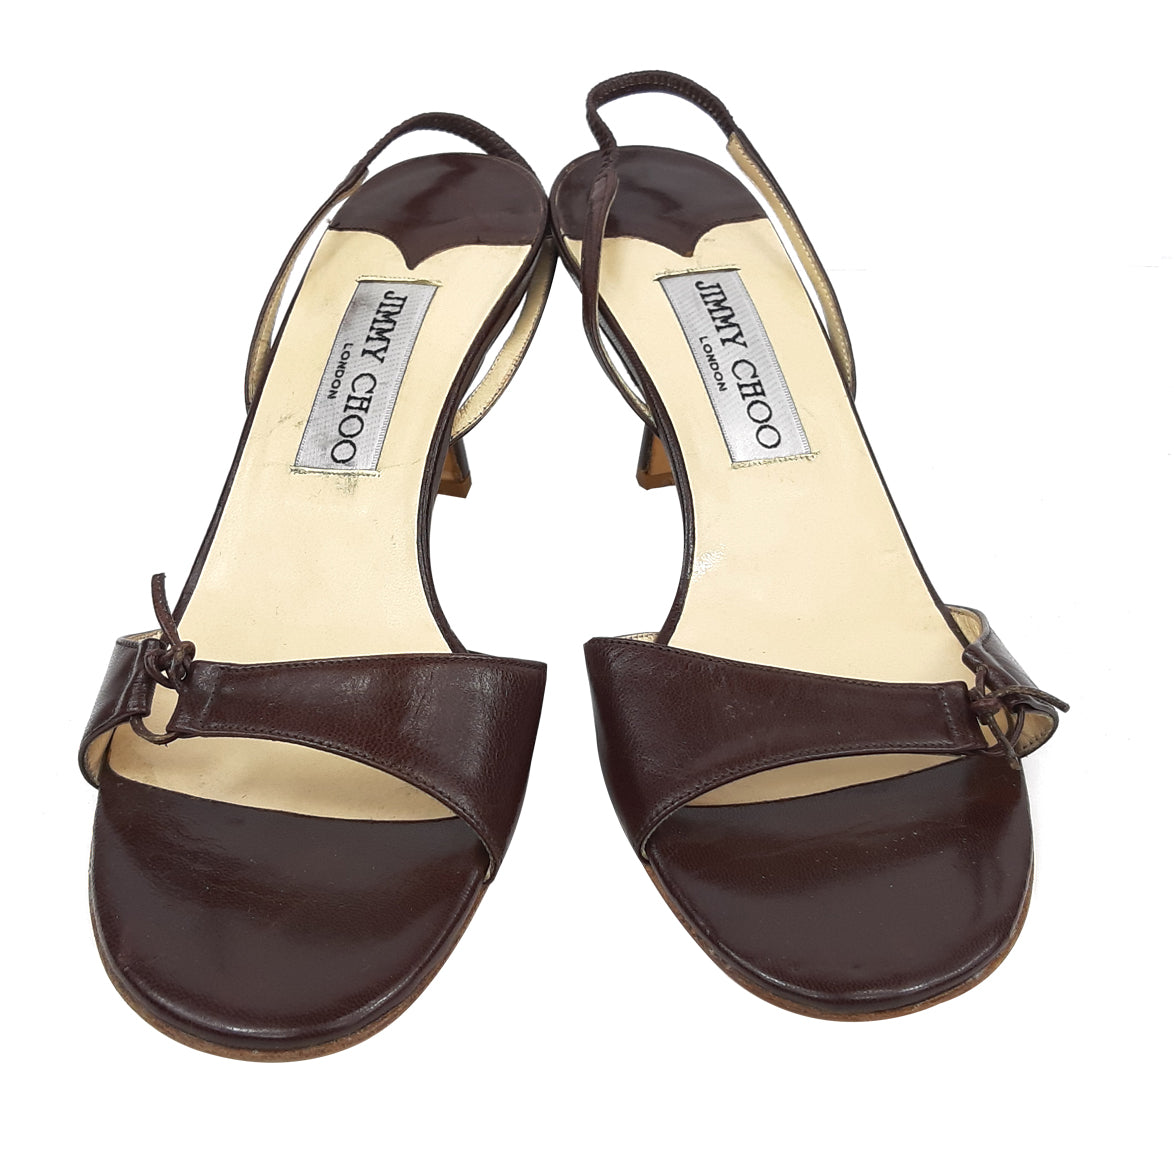 Jimmy Choo Leather Sandals in Brown Size 36,5 (EU)